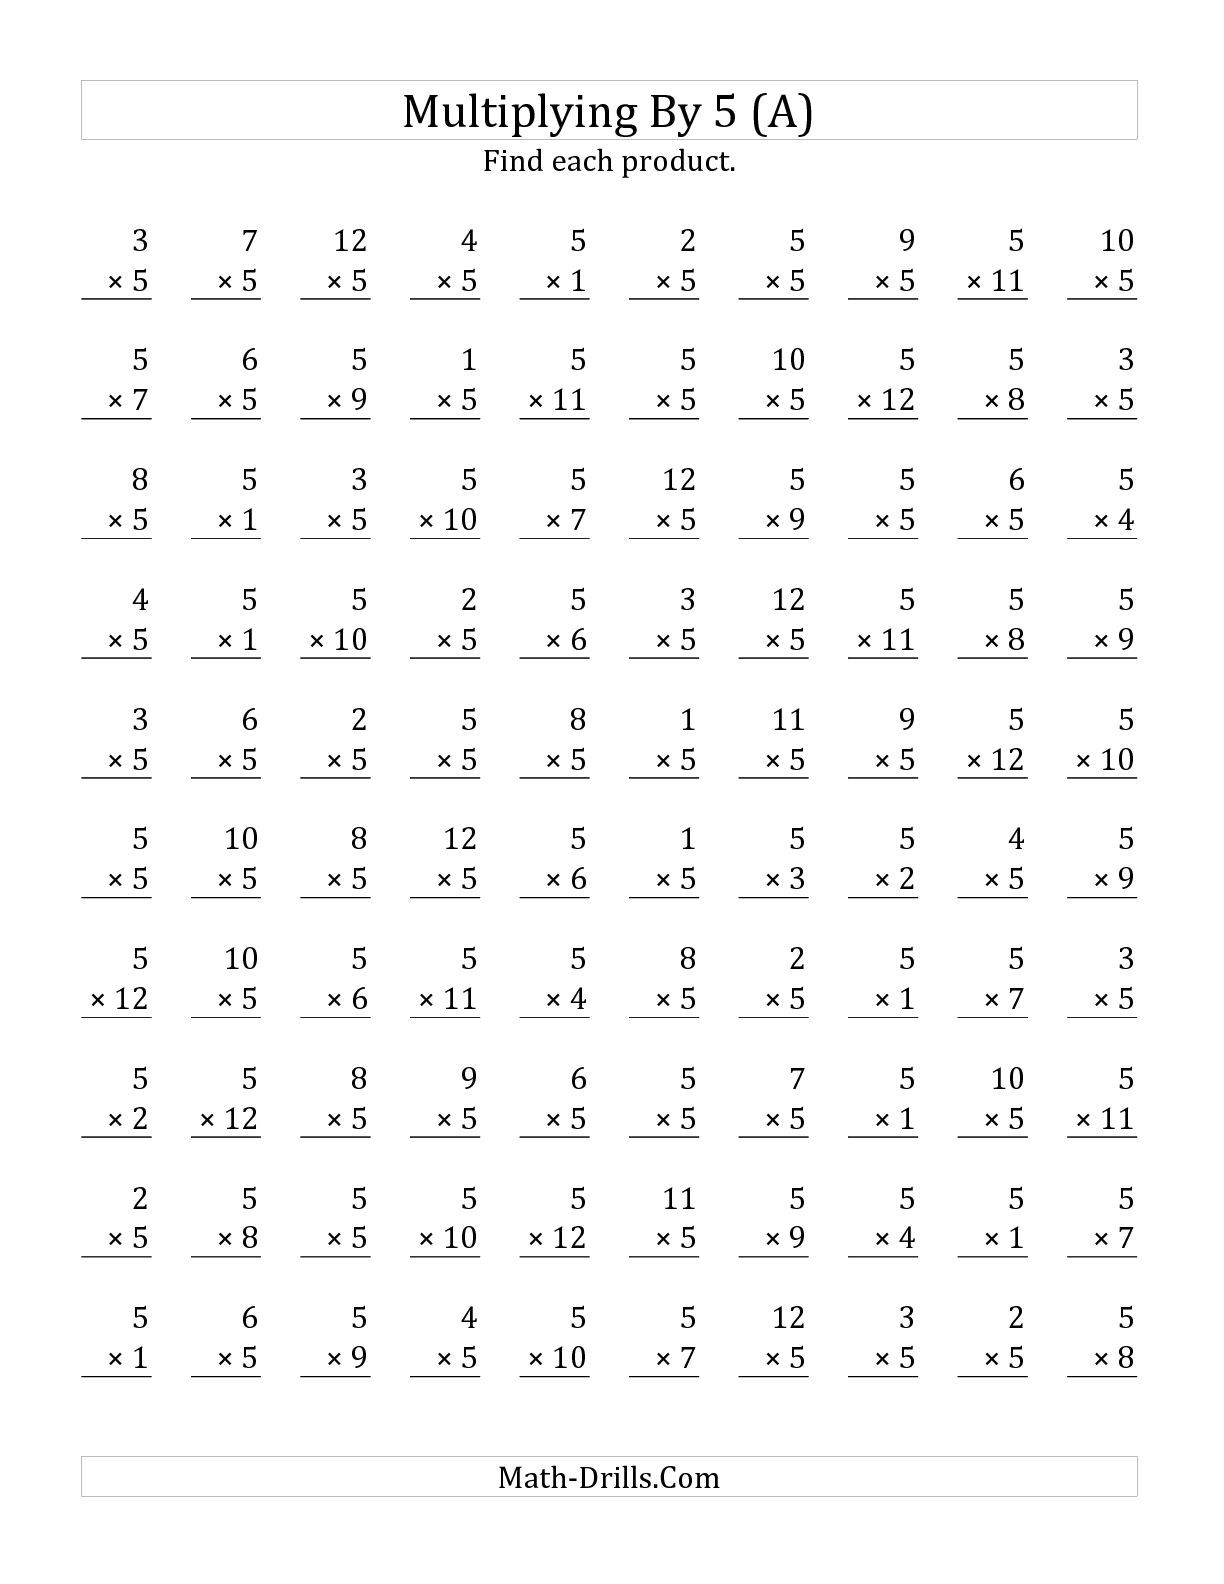 Worksheets Math Multiplication Worksheets the multiplying 1 to 12 by 5 a math worksheet from multiplication page at drills com